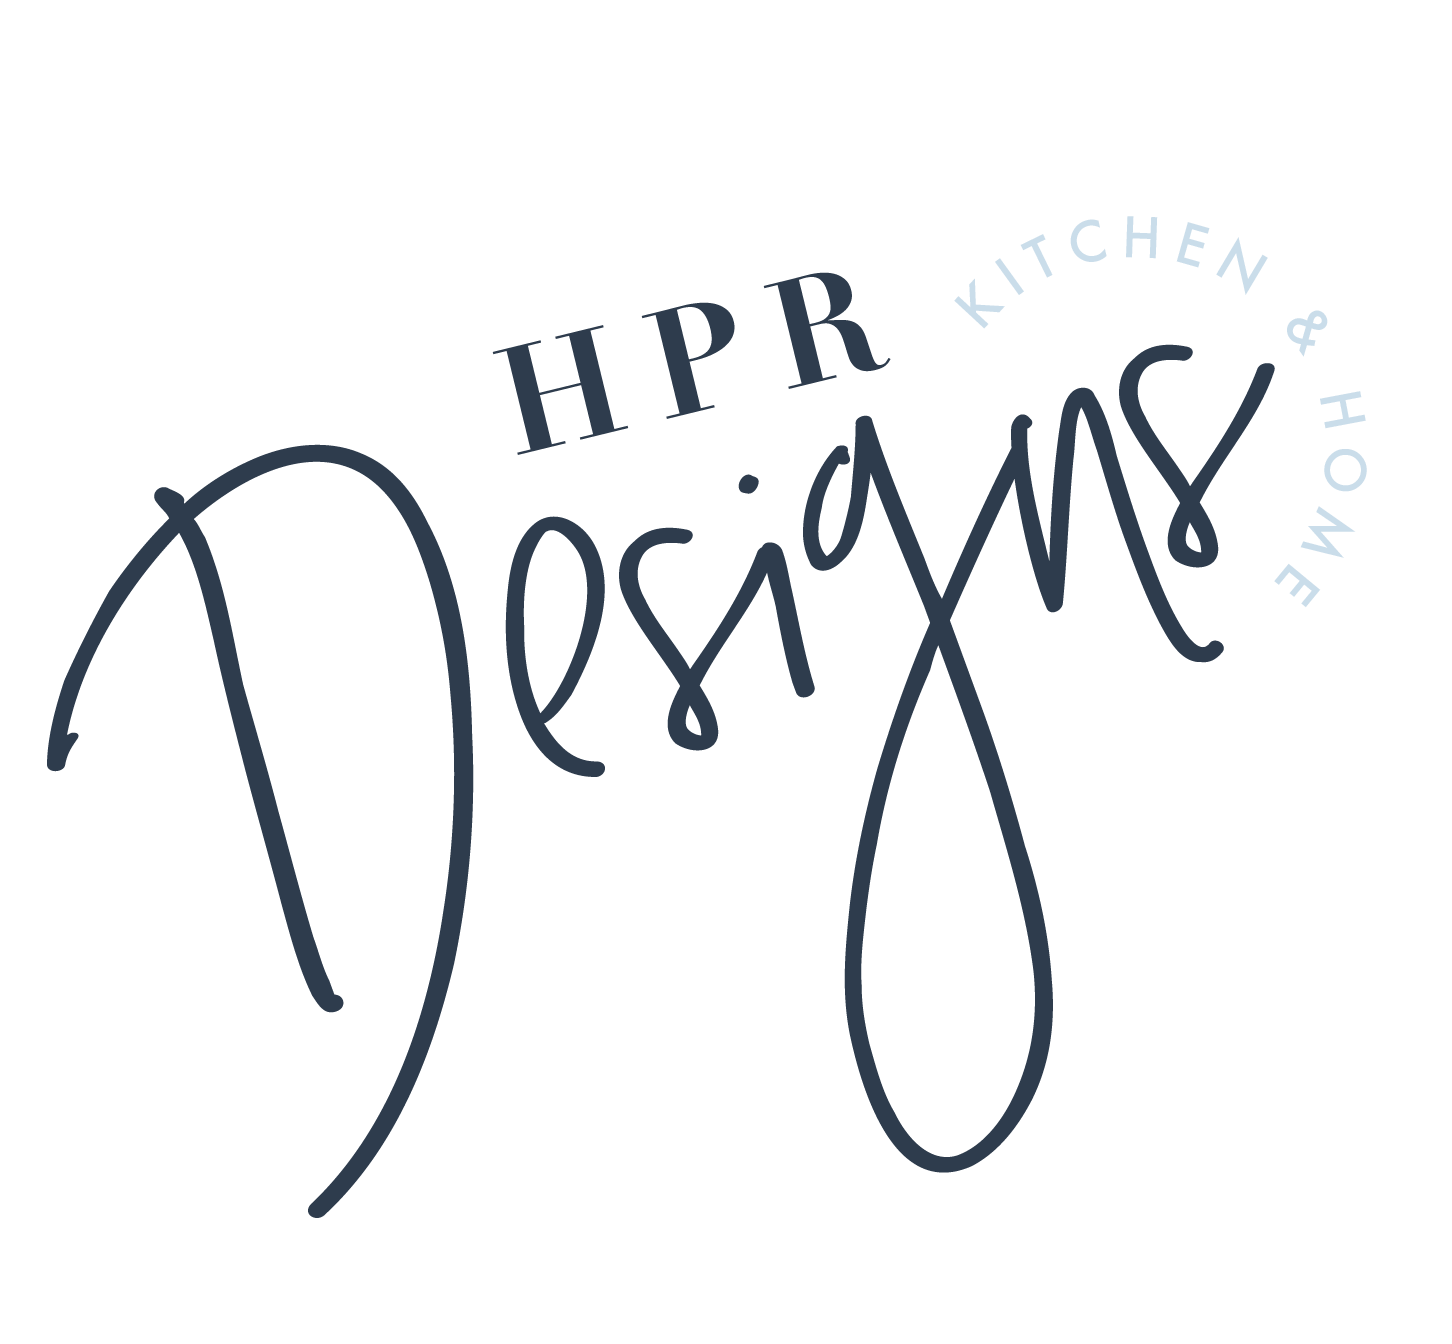 HPR Designs Submark-04.png